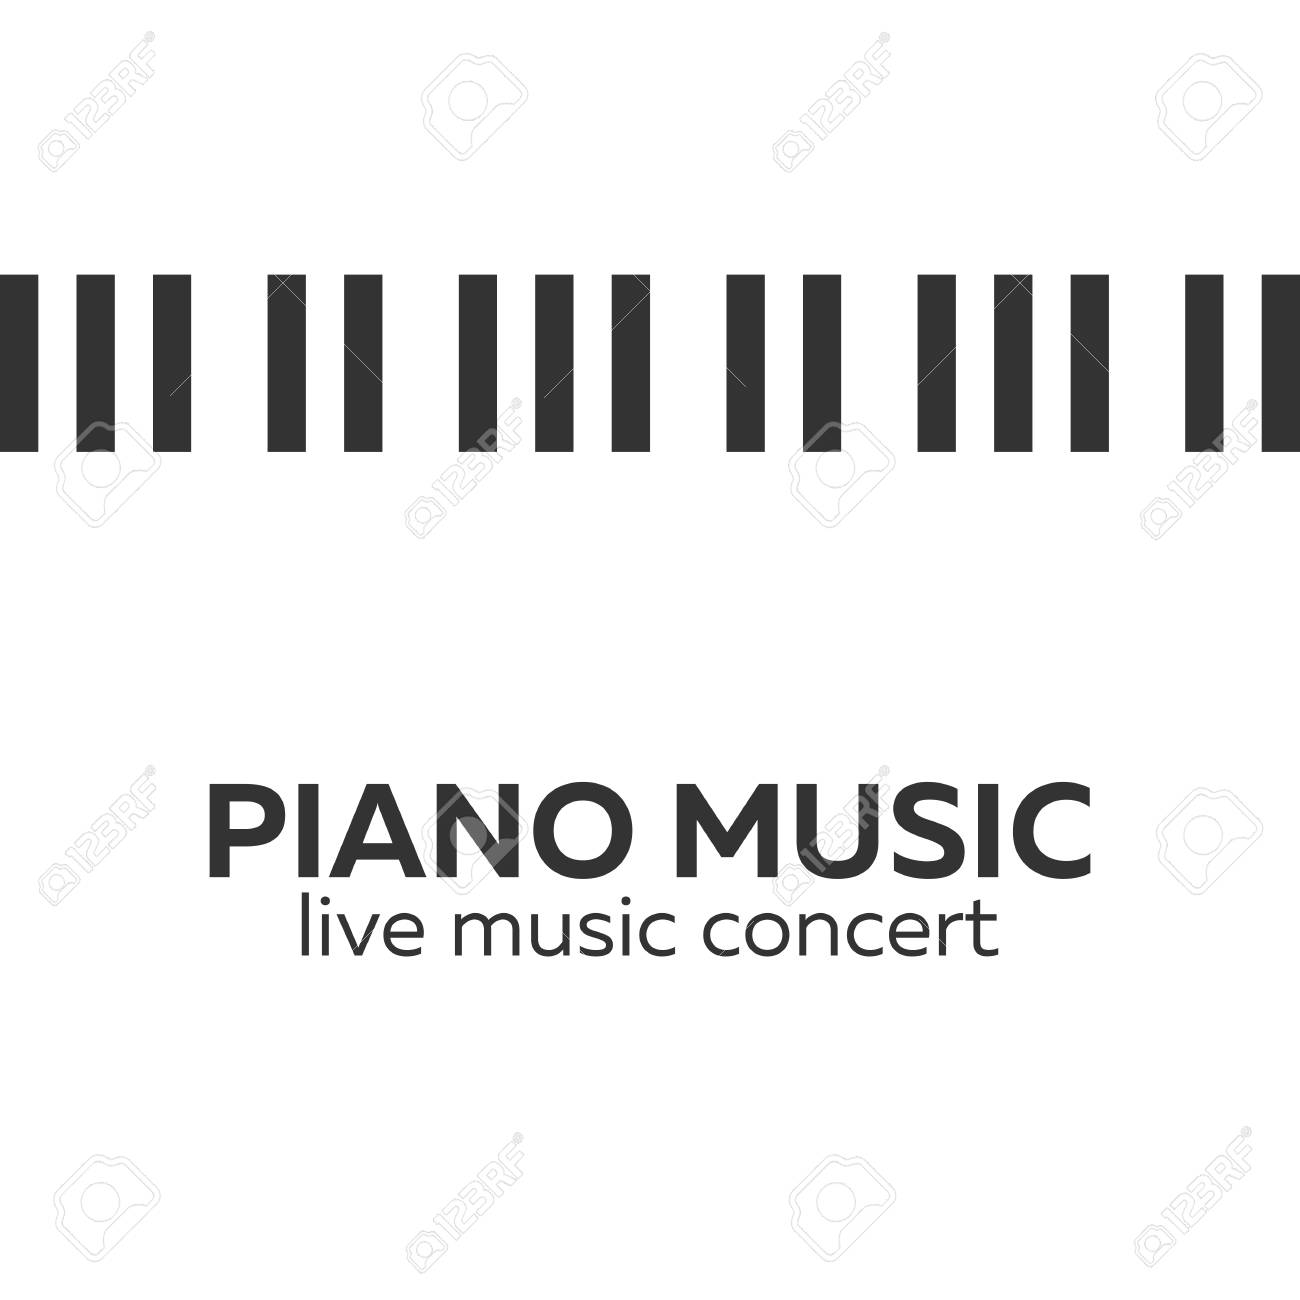 Piano Concert Poster Design Live Music Keys Vector Illustration Stock